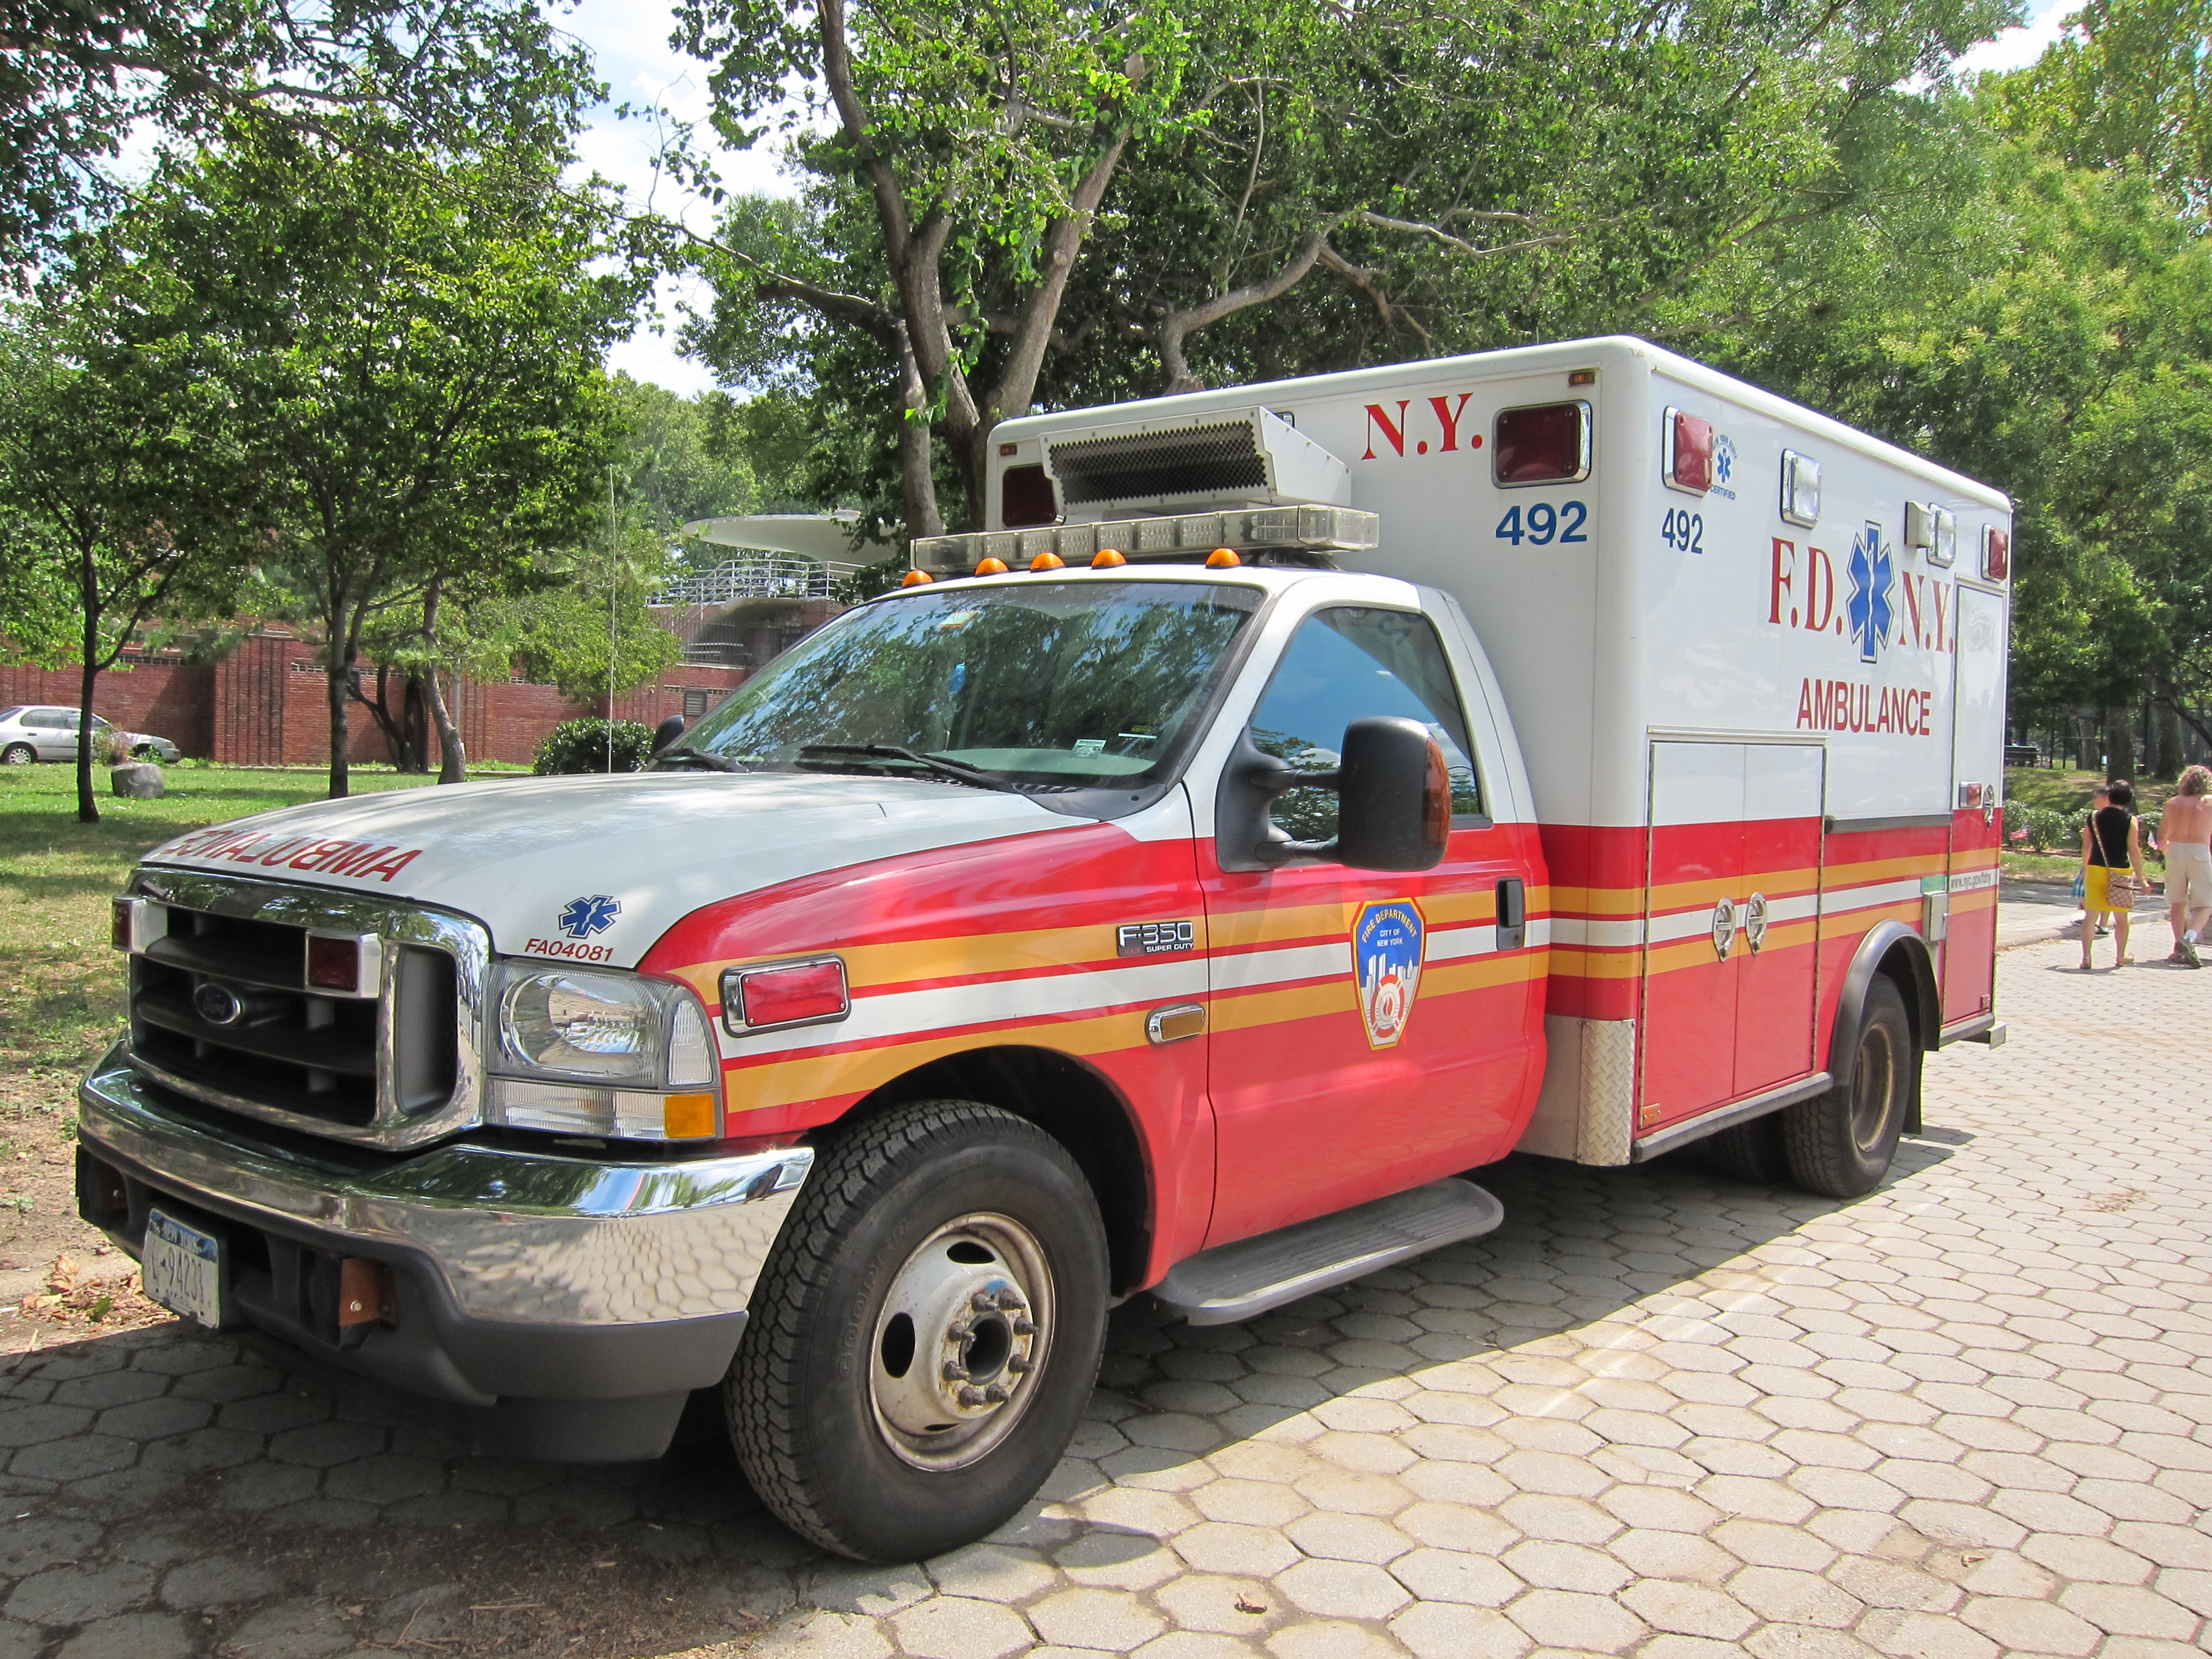 FDNY Ford Ambulance